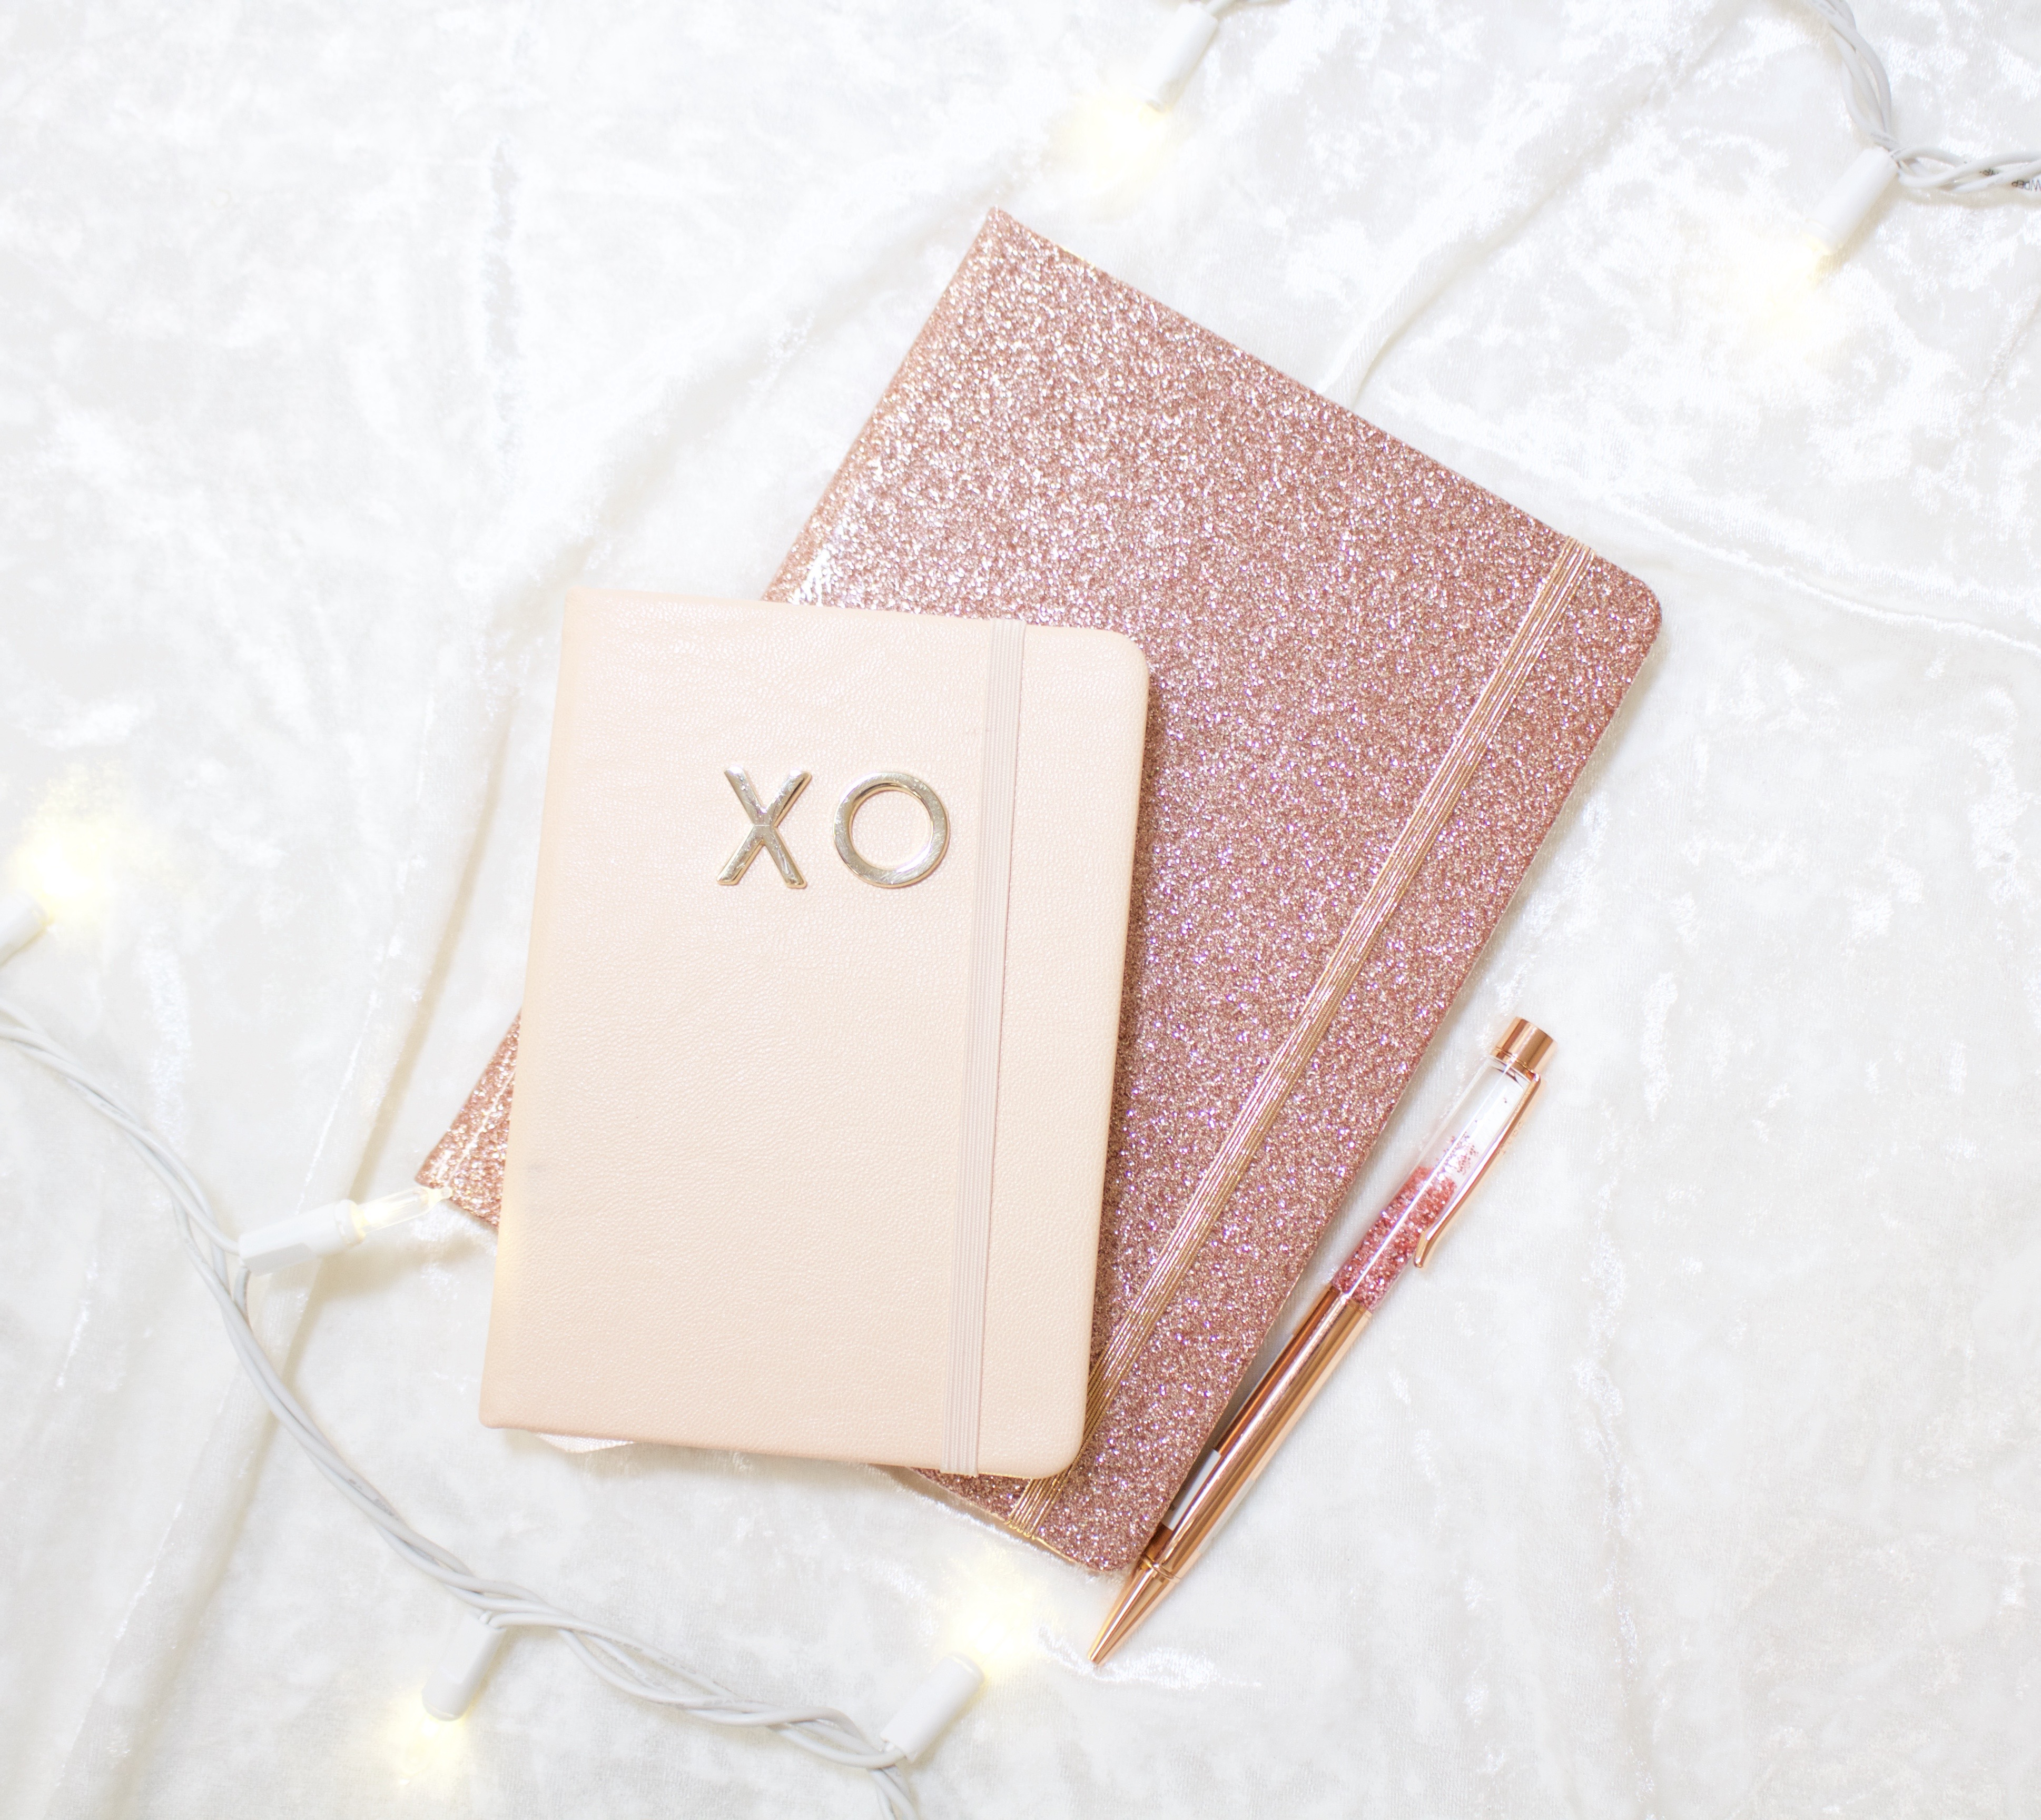 holiday gifts Typo notebooks